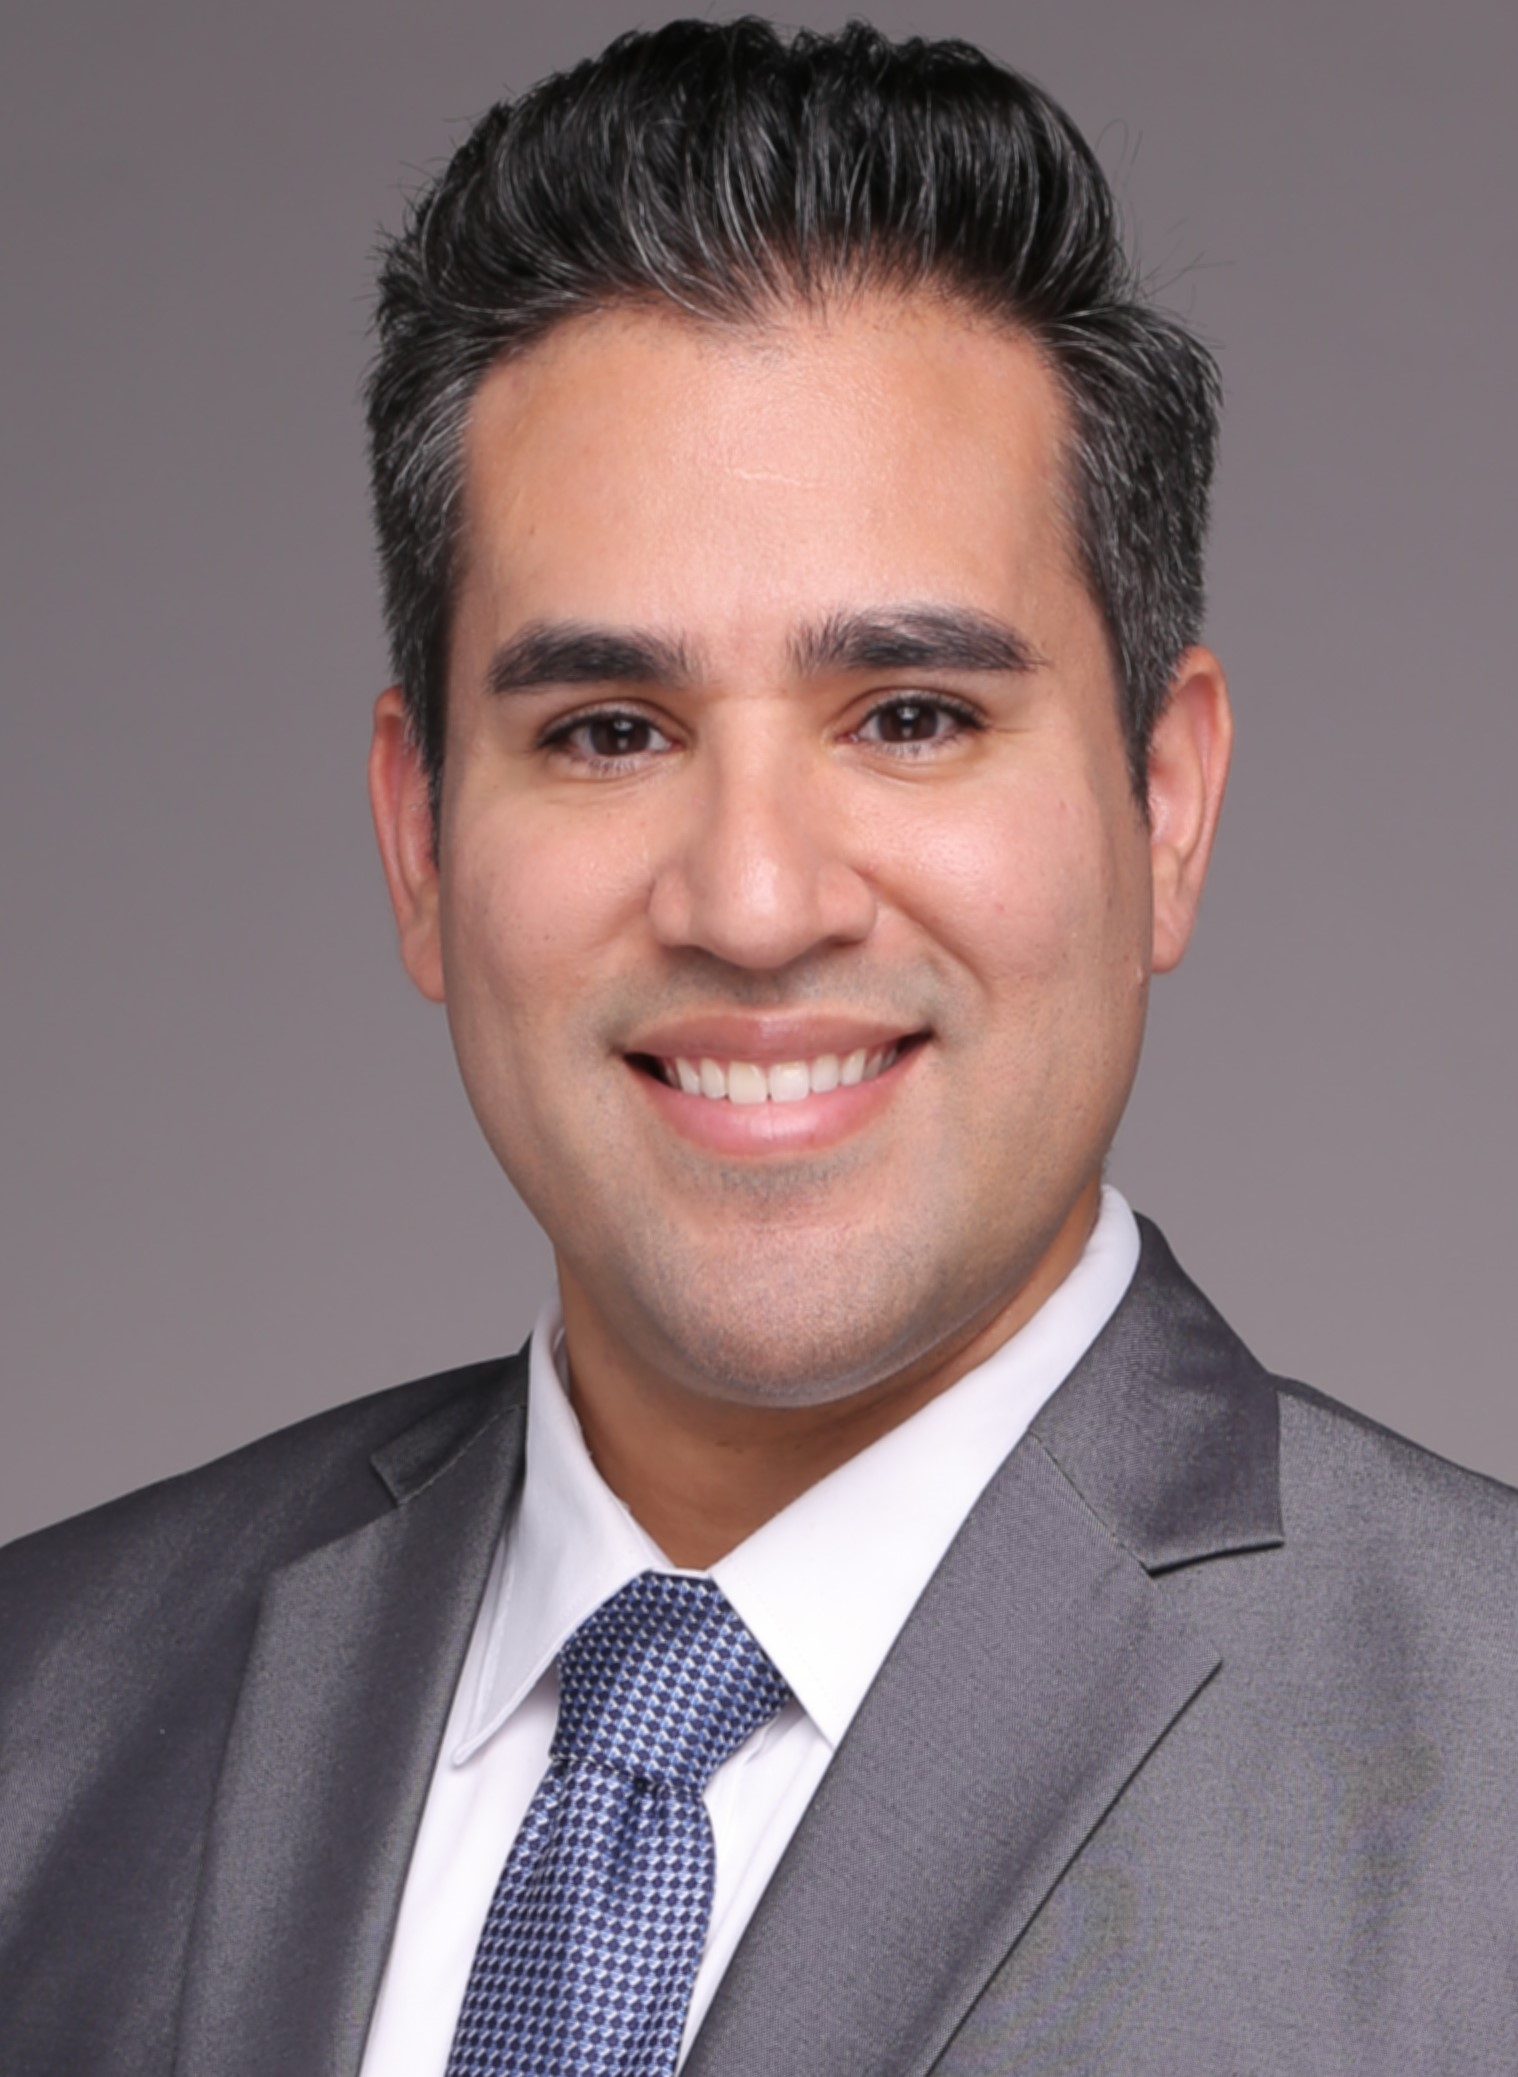 Professional headshot with man in suit and tie smiling for camera.